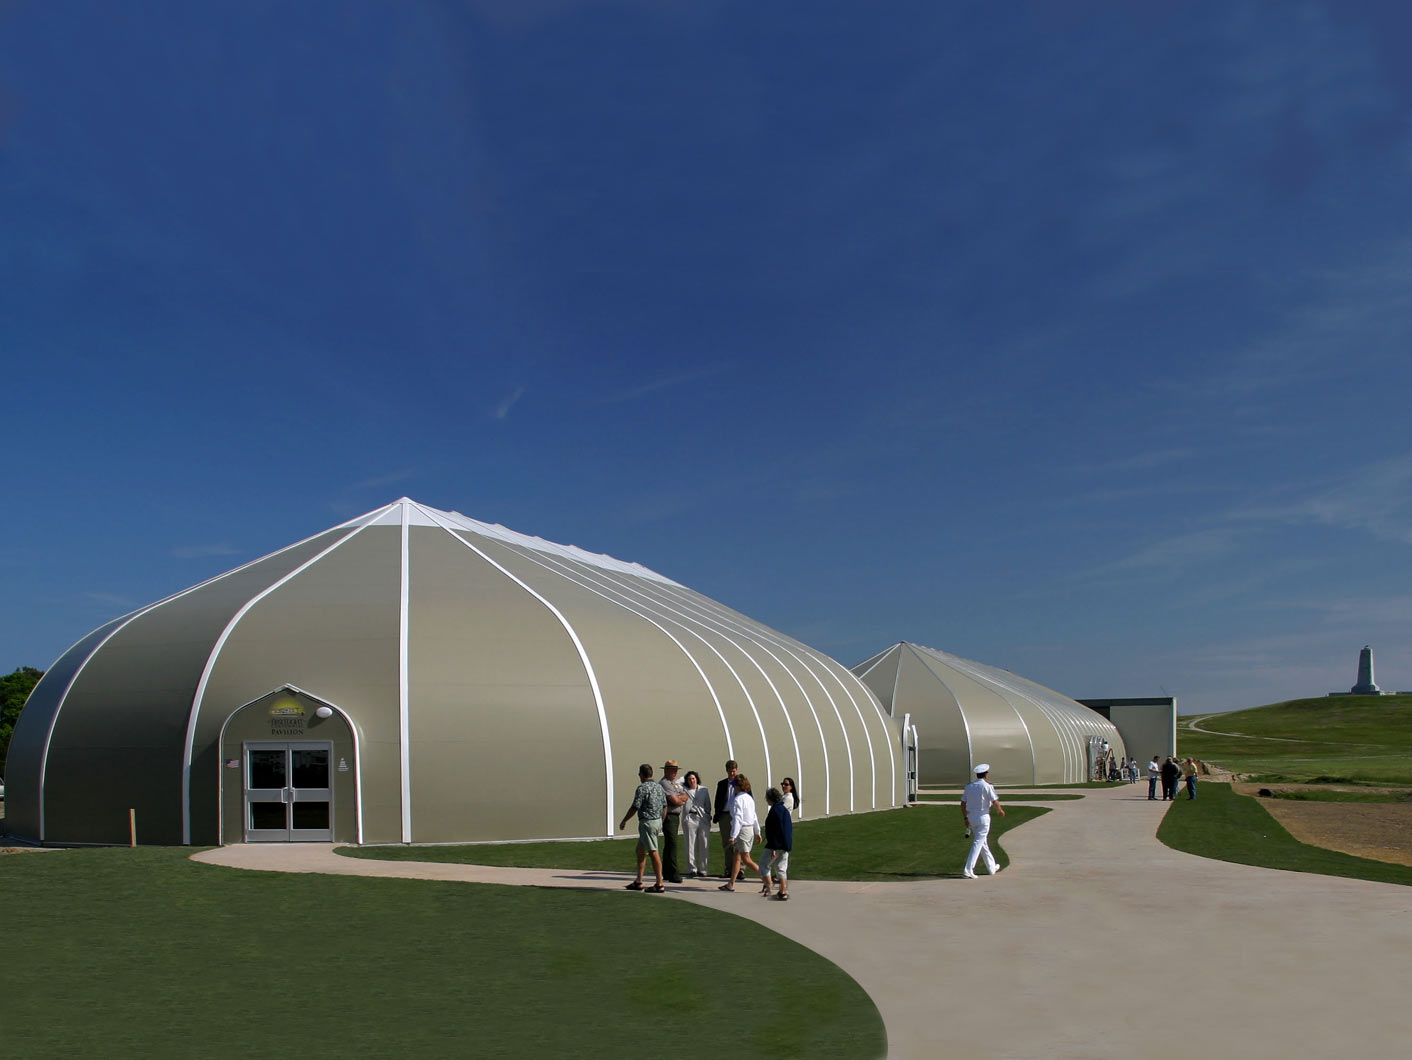 Entertainment Tents Caf 233 Facilities Sprung Structures